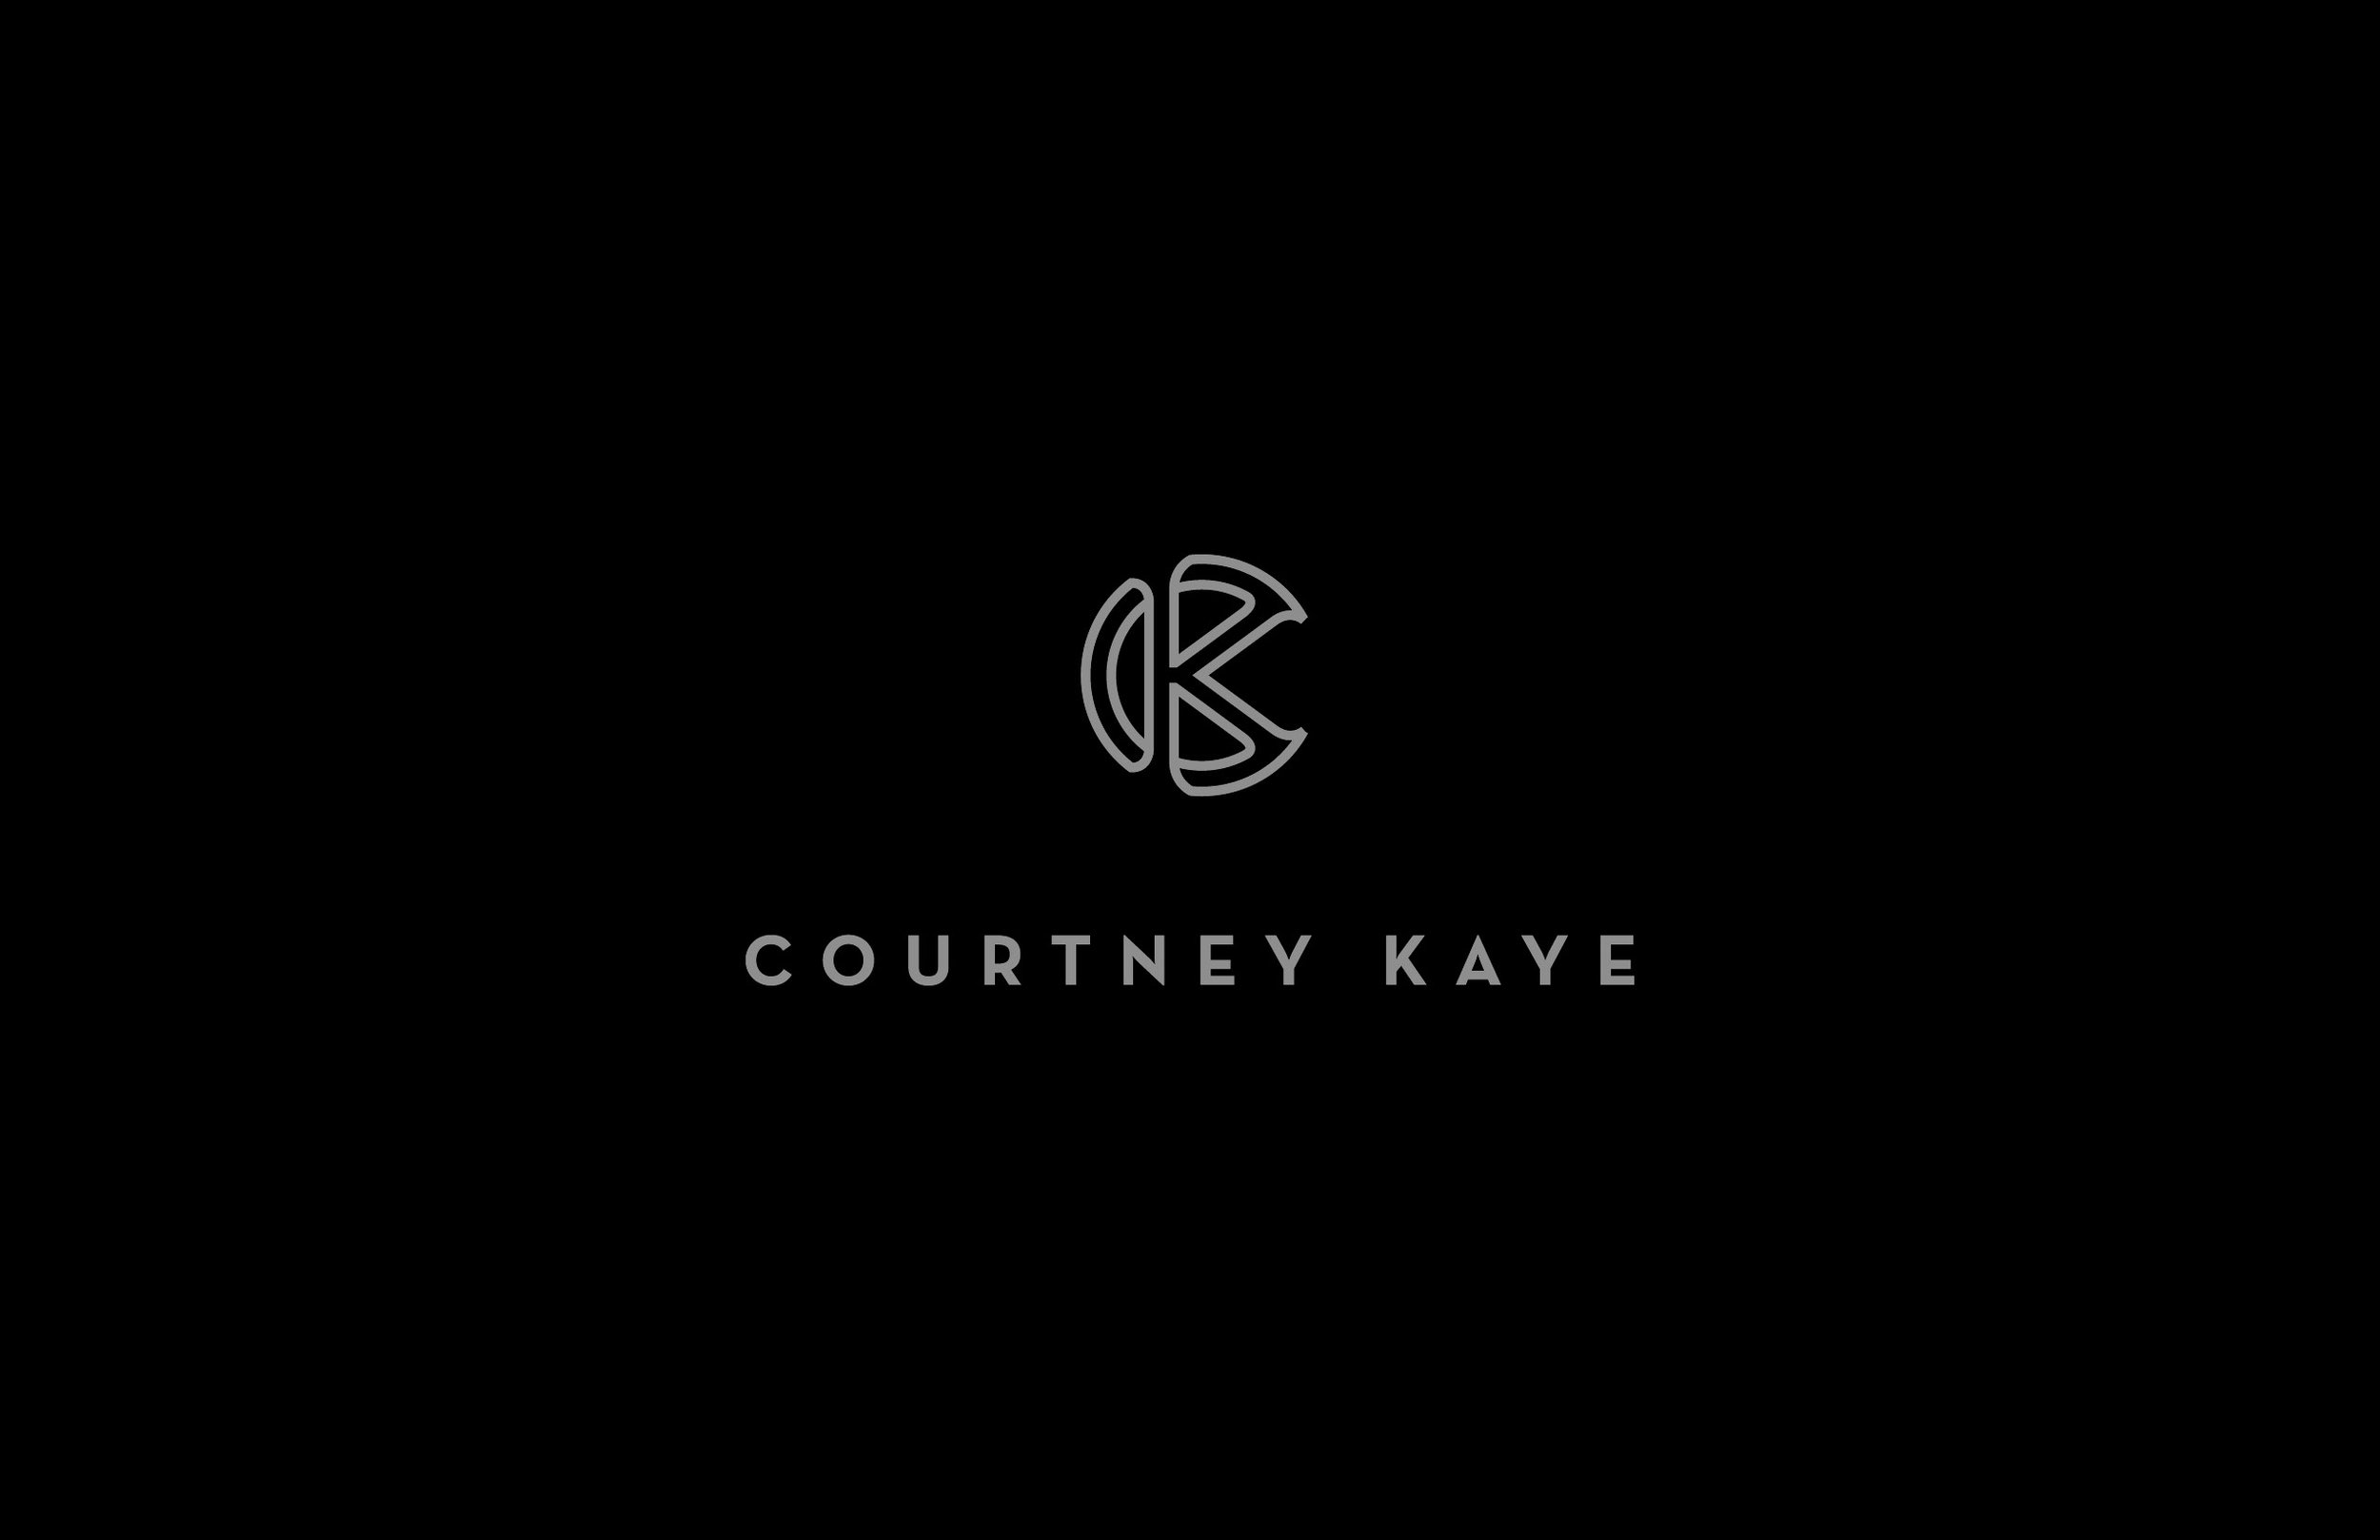 Logo design - Courtney Kaye